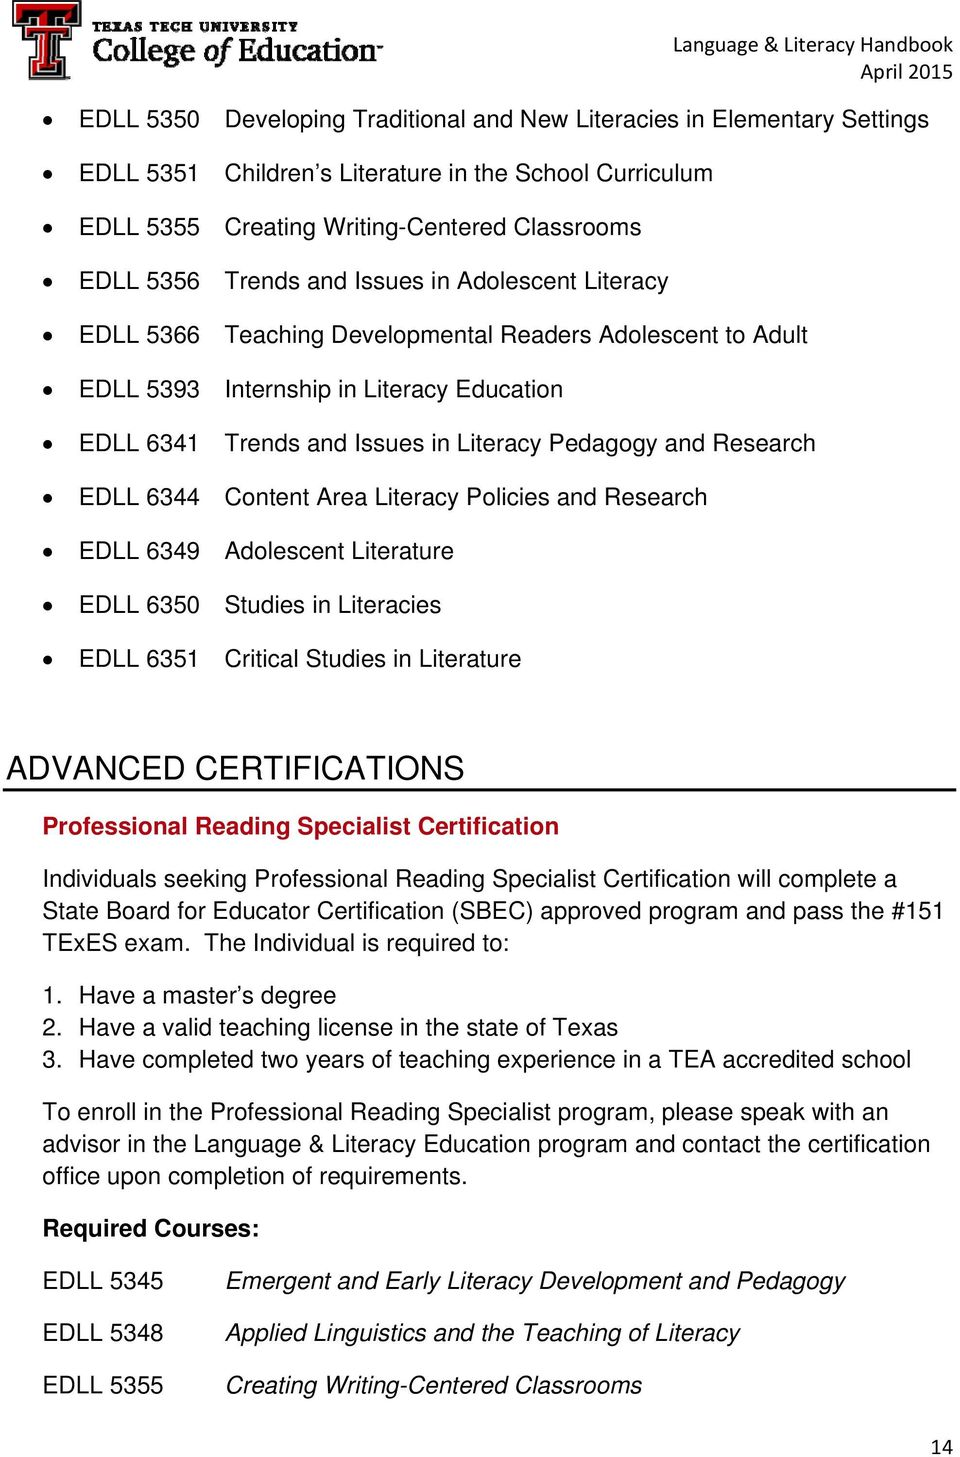 EDLL 6344 Content Area Literacy Policies and Research EDLL 6349 Adolescent Literature EDLL 6350 Studies in Literacies EDLL 6351 Critical Studies in Literature ADVANCED CERTIFICATIONS Professional